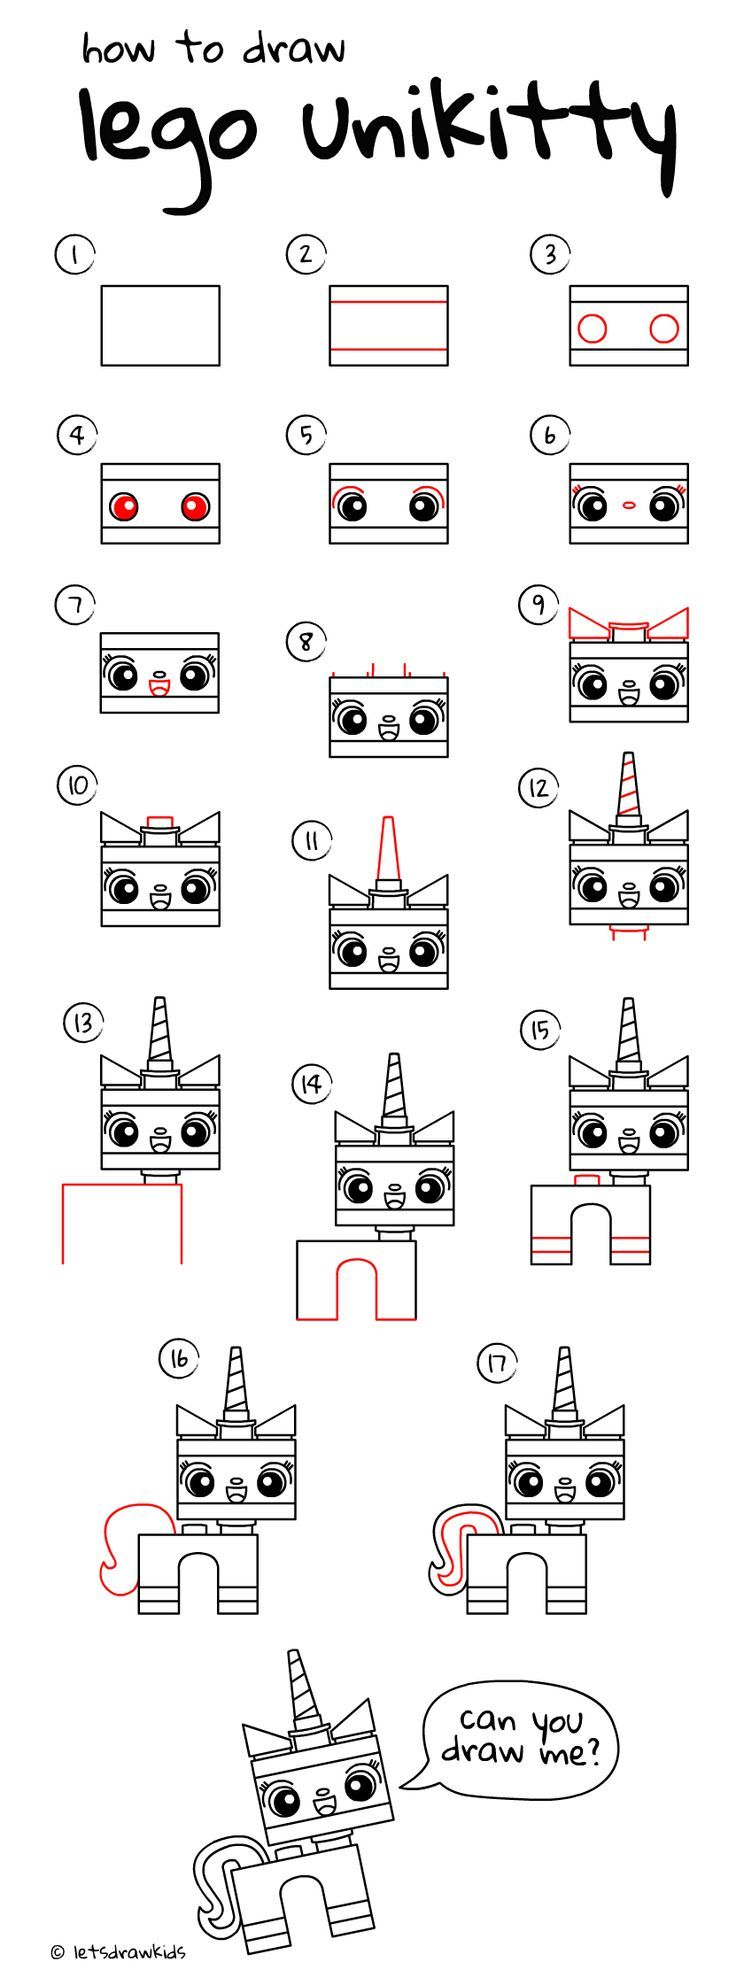 How to draw lego unikitty easy drawing step by step perfect for how to draw lego unikitty easy drawing step by step perfect for kids lets draw kids httpletsdrawkids thecheapjerseys Images